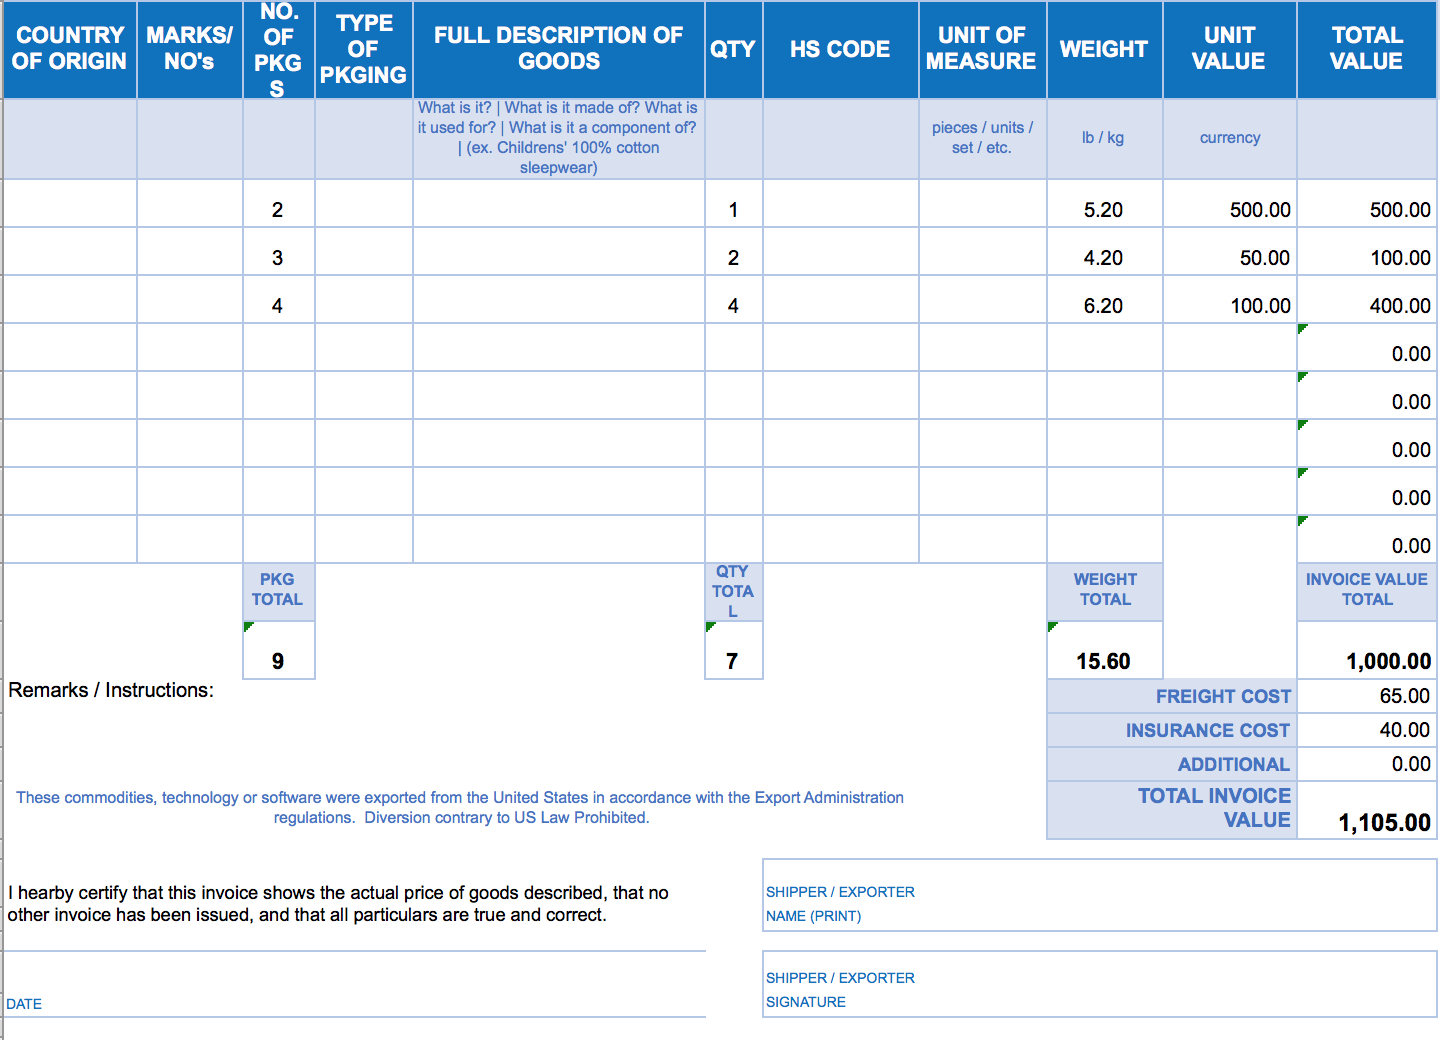 Free Excel Invoice Templates  Smartsheet Throughout Invoice Template Word 2010